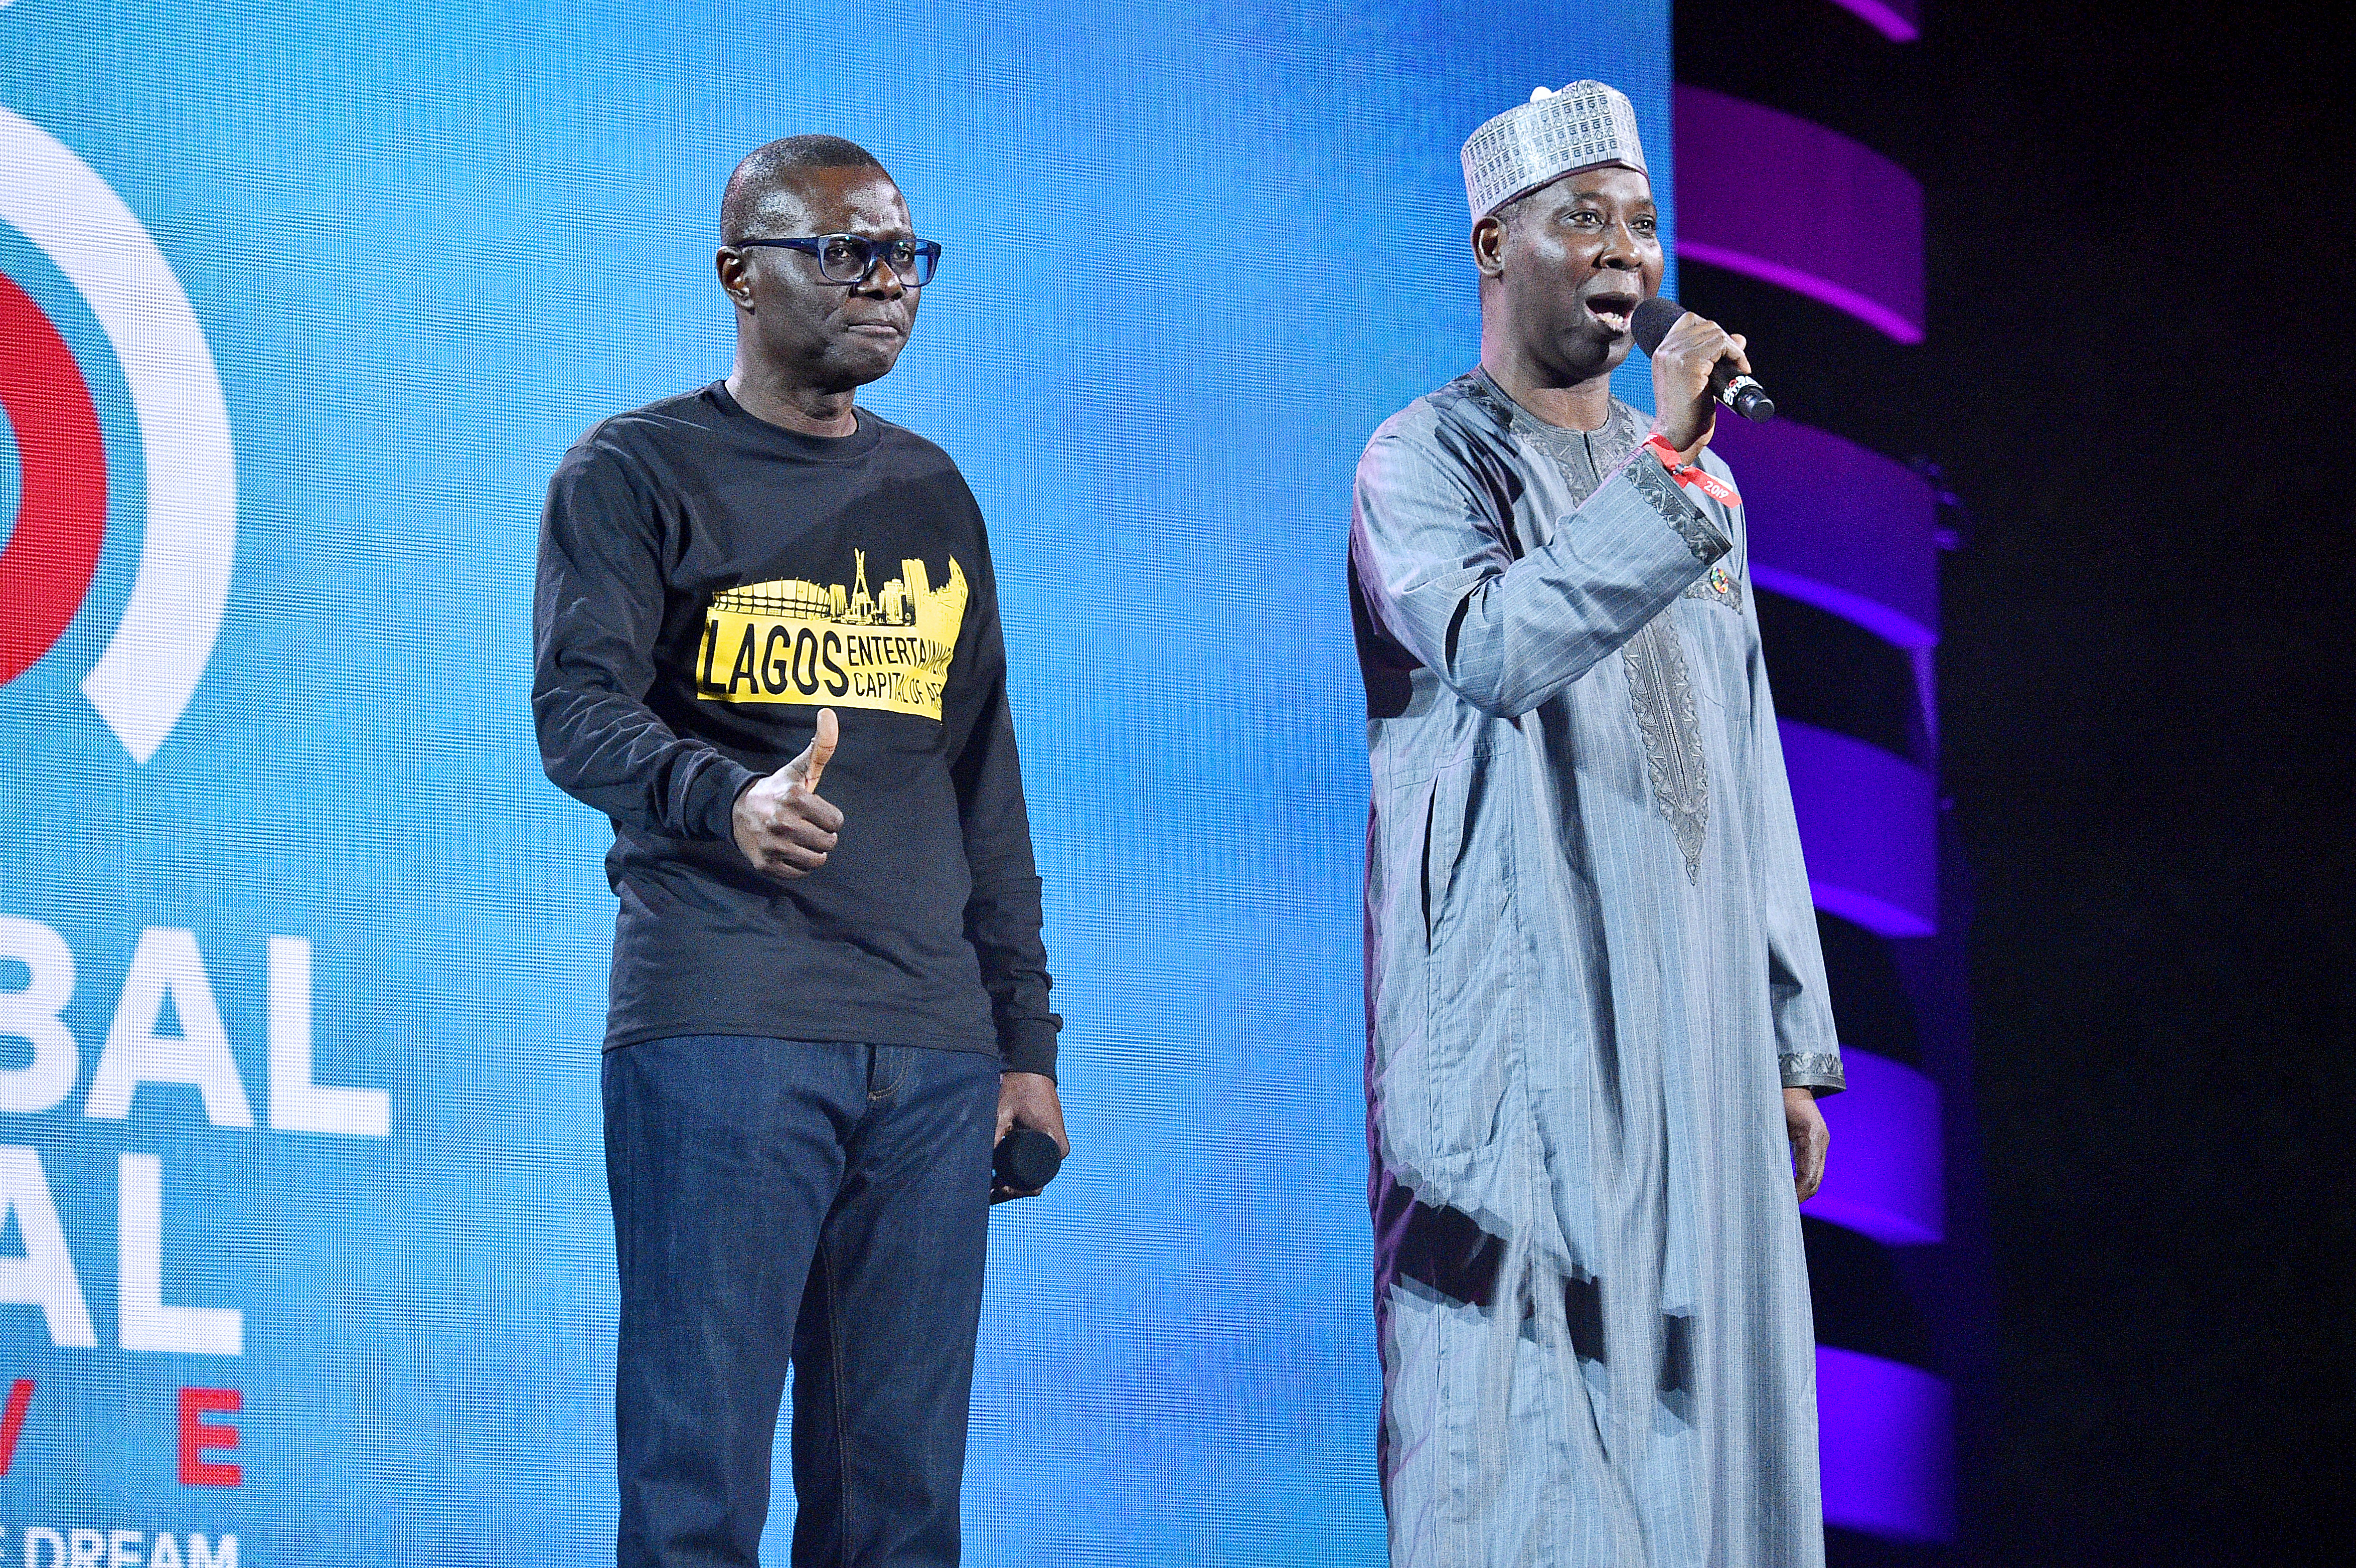 NEW YORK, NEW YORK - SEPTEMBER 28: Governor of Lagos State Babajide Sanwo-Olu and UN General Assemby 74th President Tijjani Muhammad-Bande speak onstage during the 2019 Global Citizen Festival: Power The Movement in Central Park on September 28, 2019 in New York City. (Photo by Theo Wargo/Getty Images for Global Citizen)